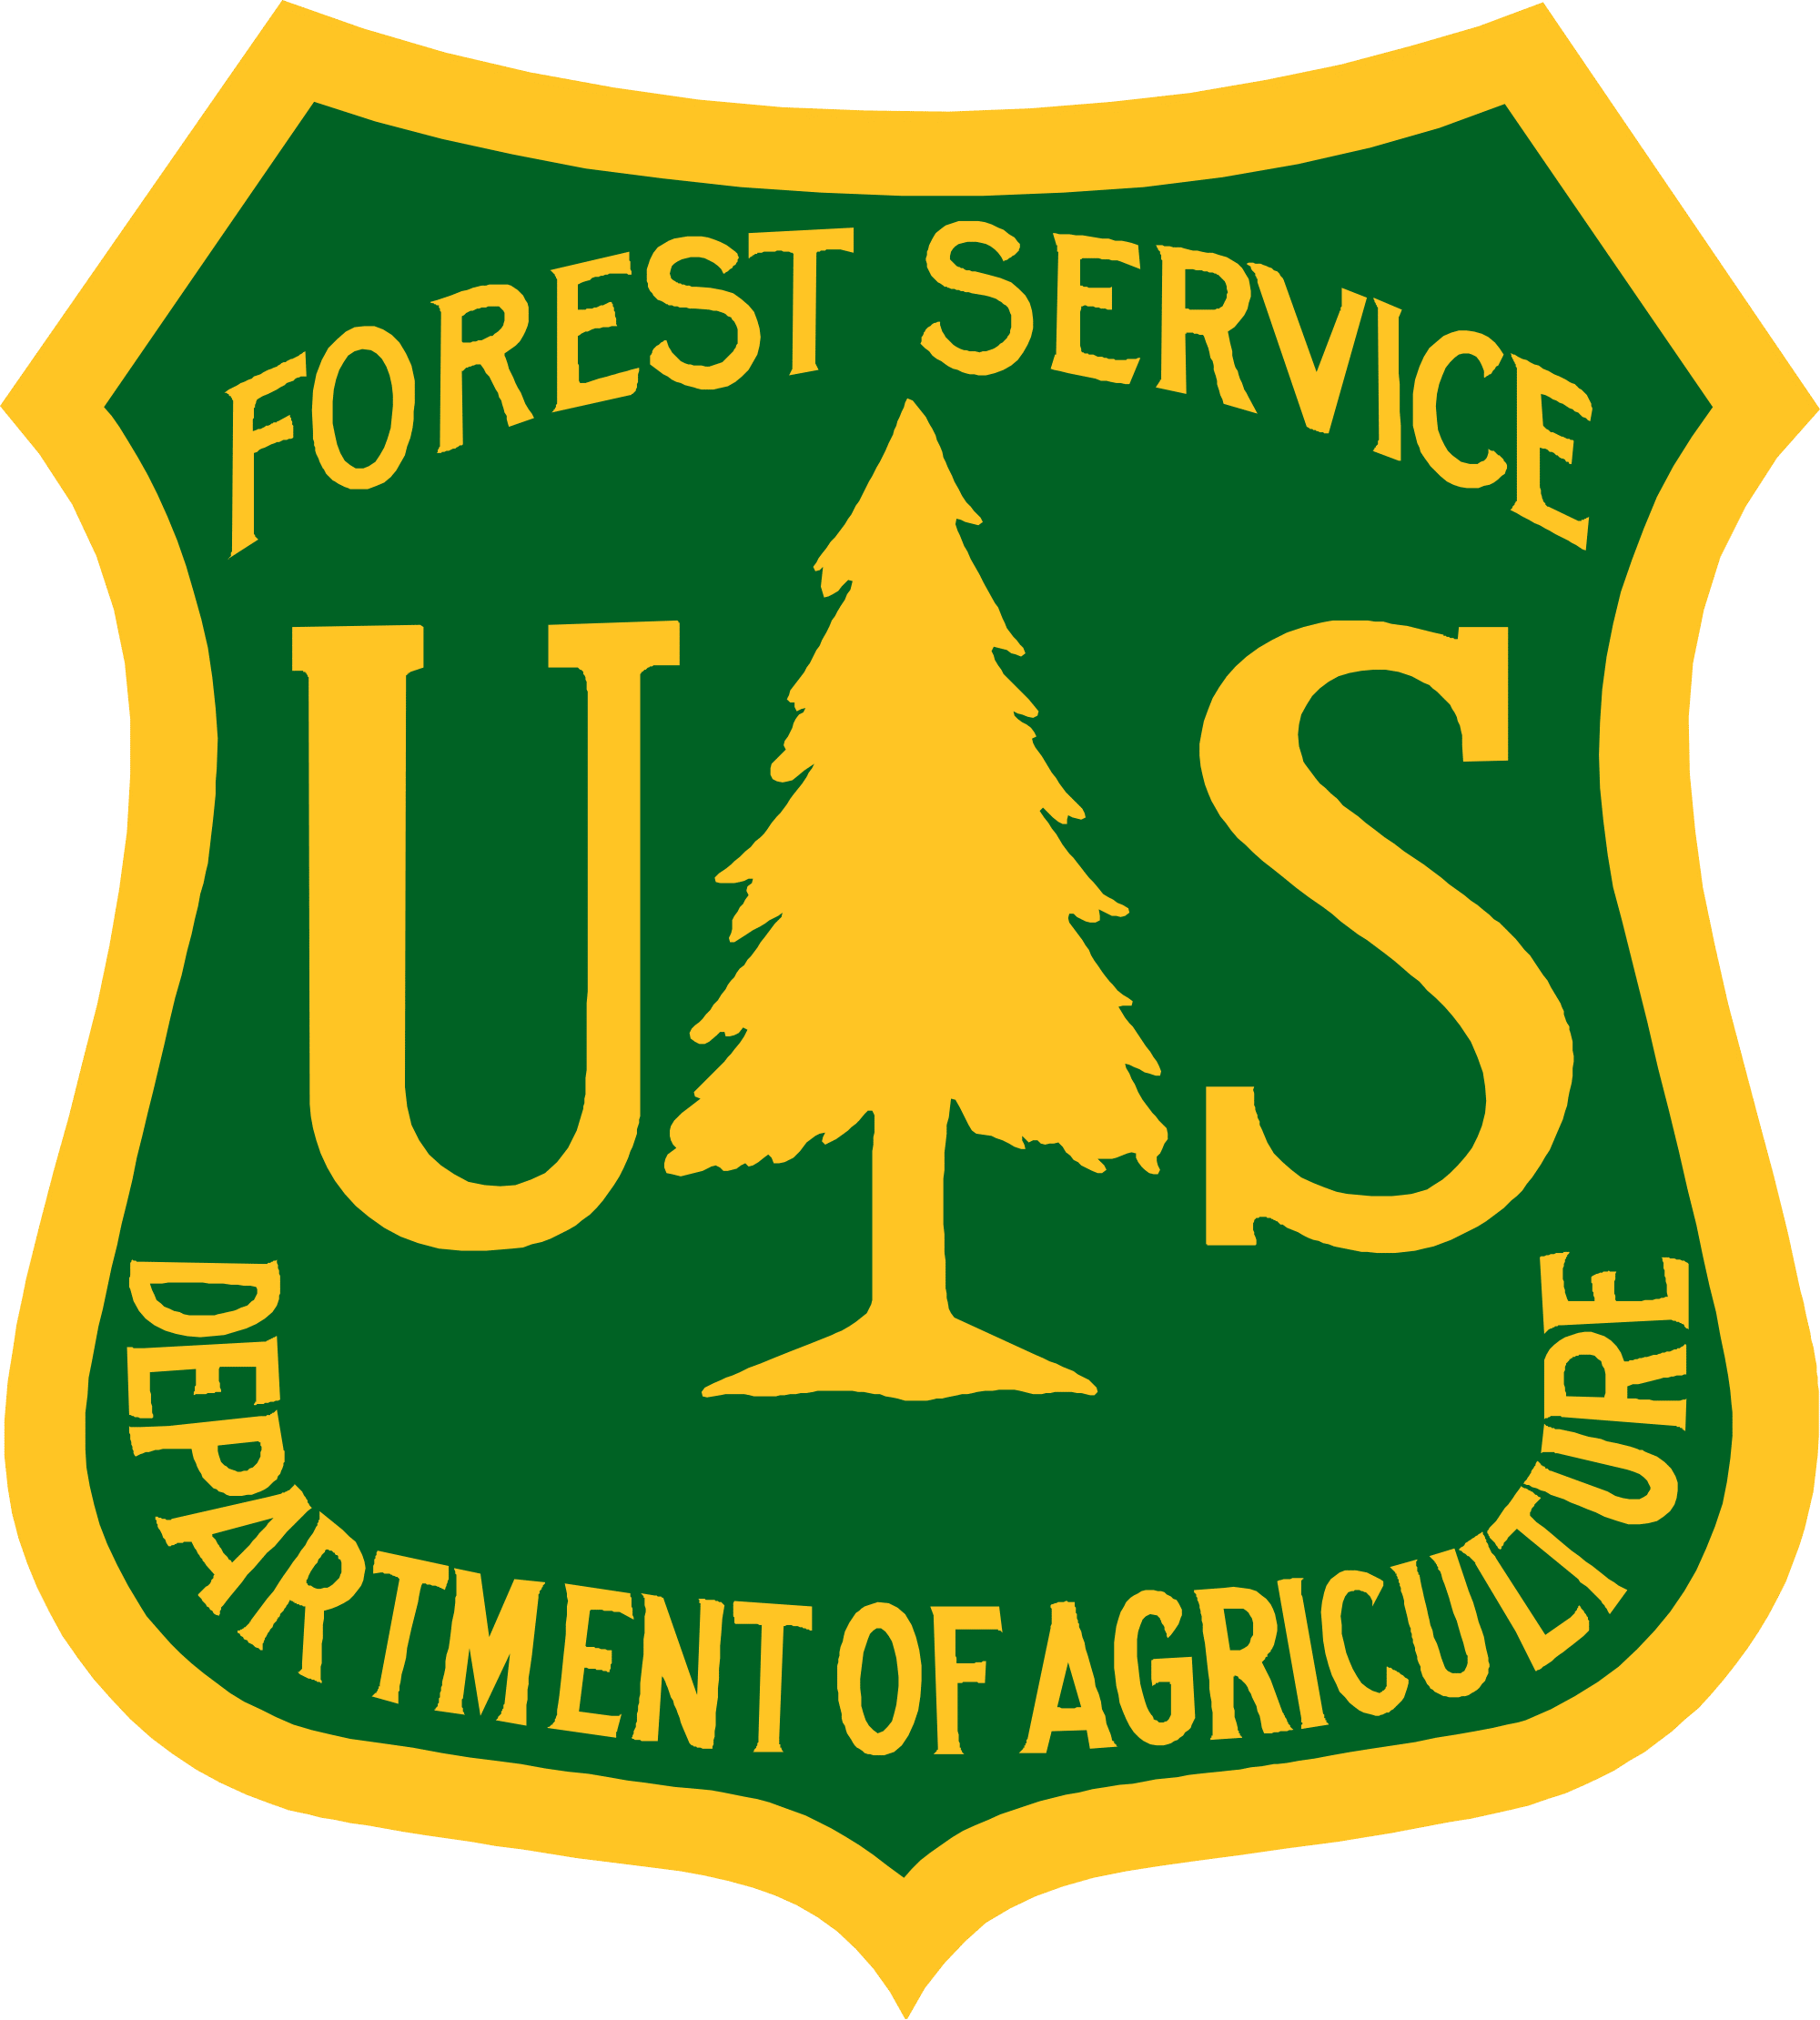 Superior National Forest Naturalist Programs